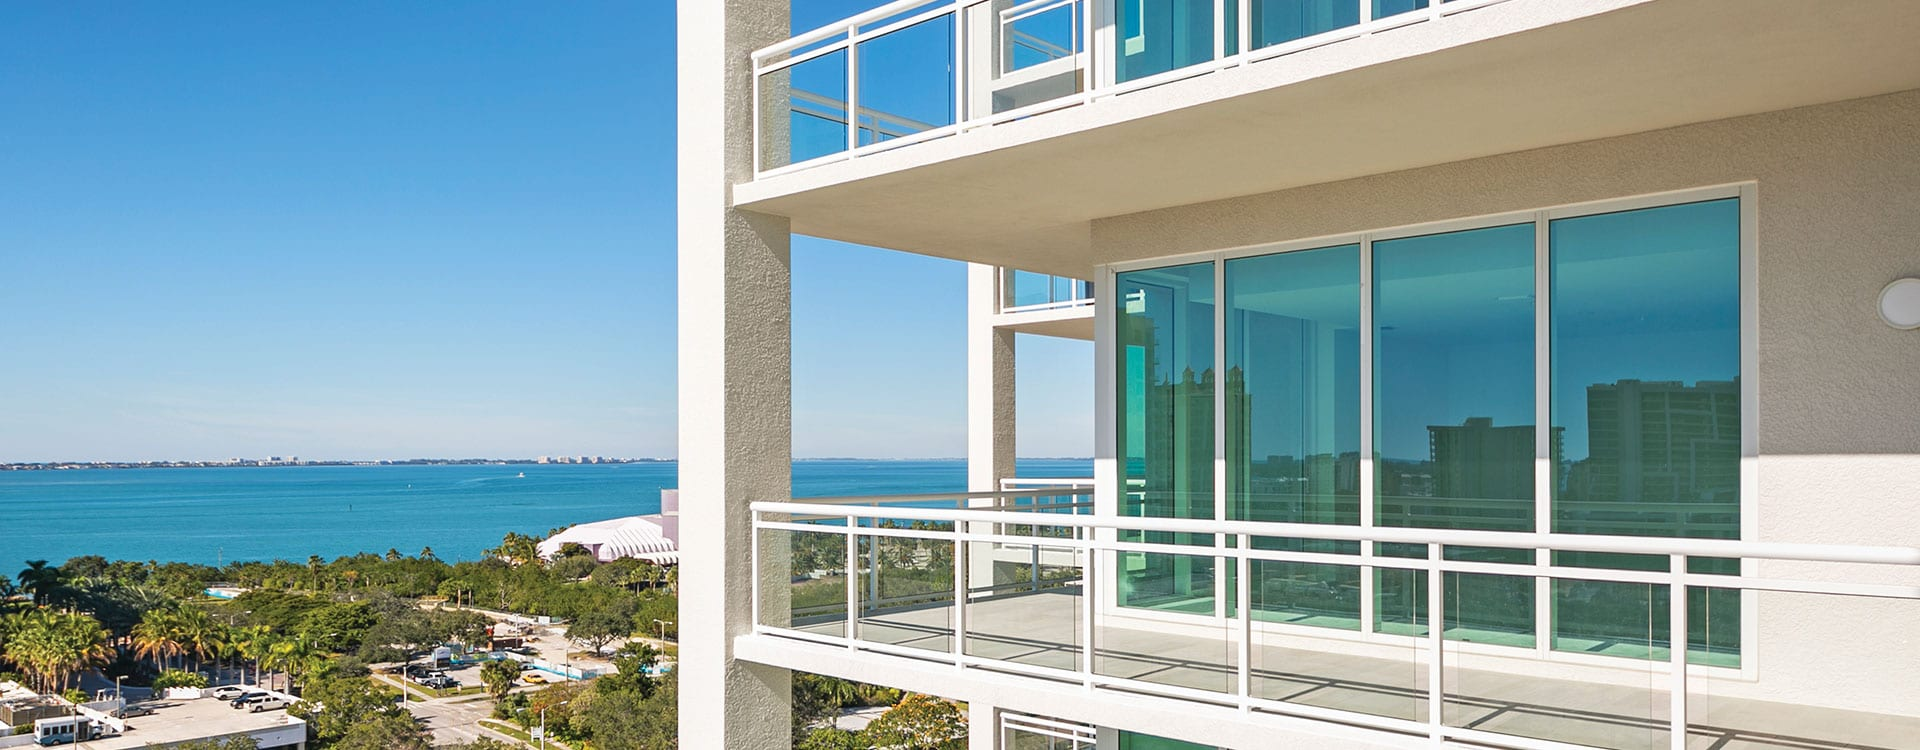 blvd sarasota residence 1104 terrace with view of bay